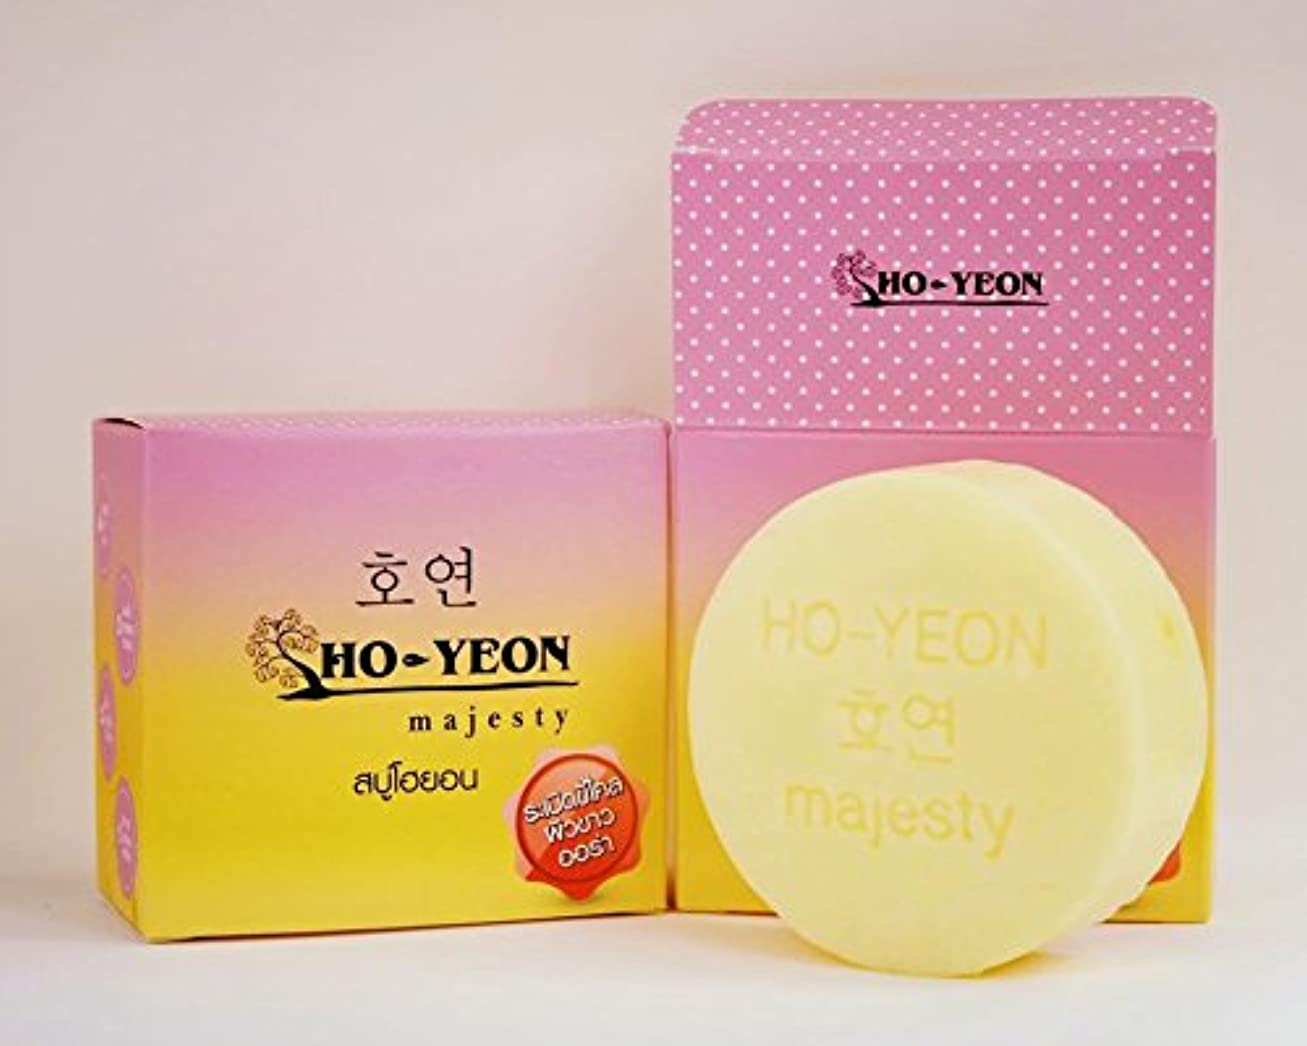 ブロンズプレート答え1 X Natural Herbal Whitening Soap. Soap Yeon Ho-yeon the HO (80 grams) Free shipping